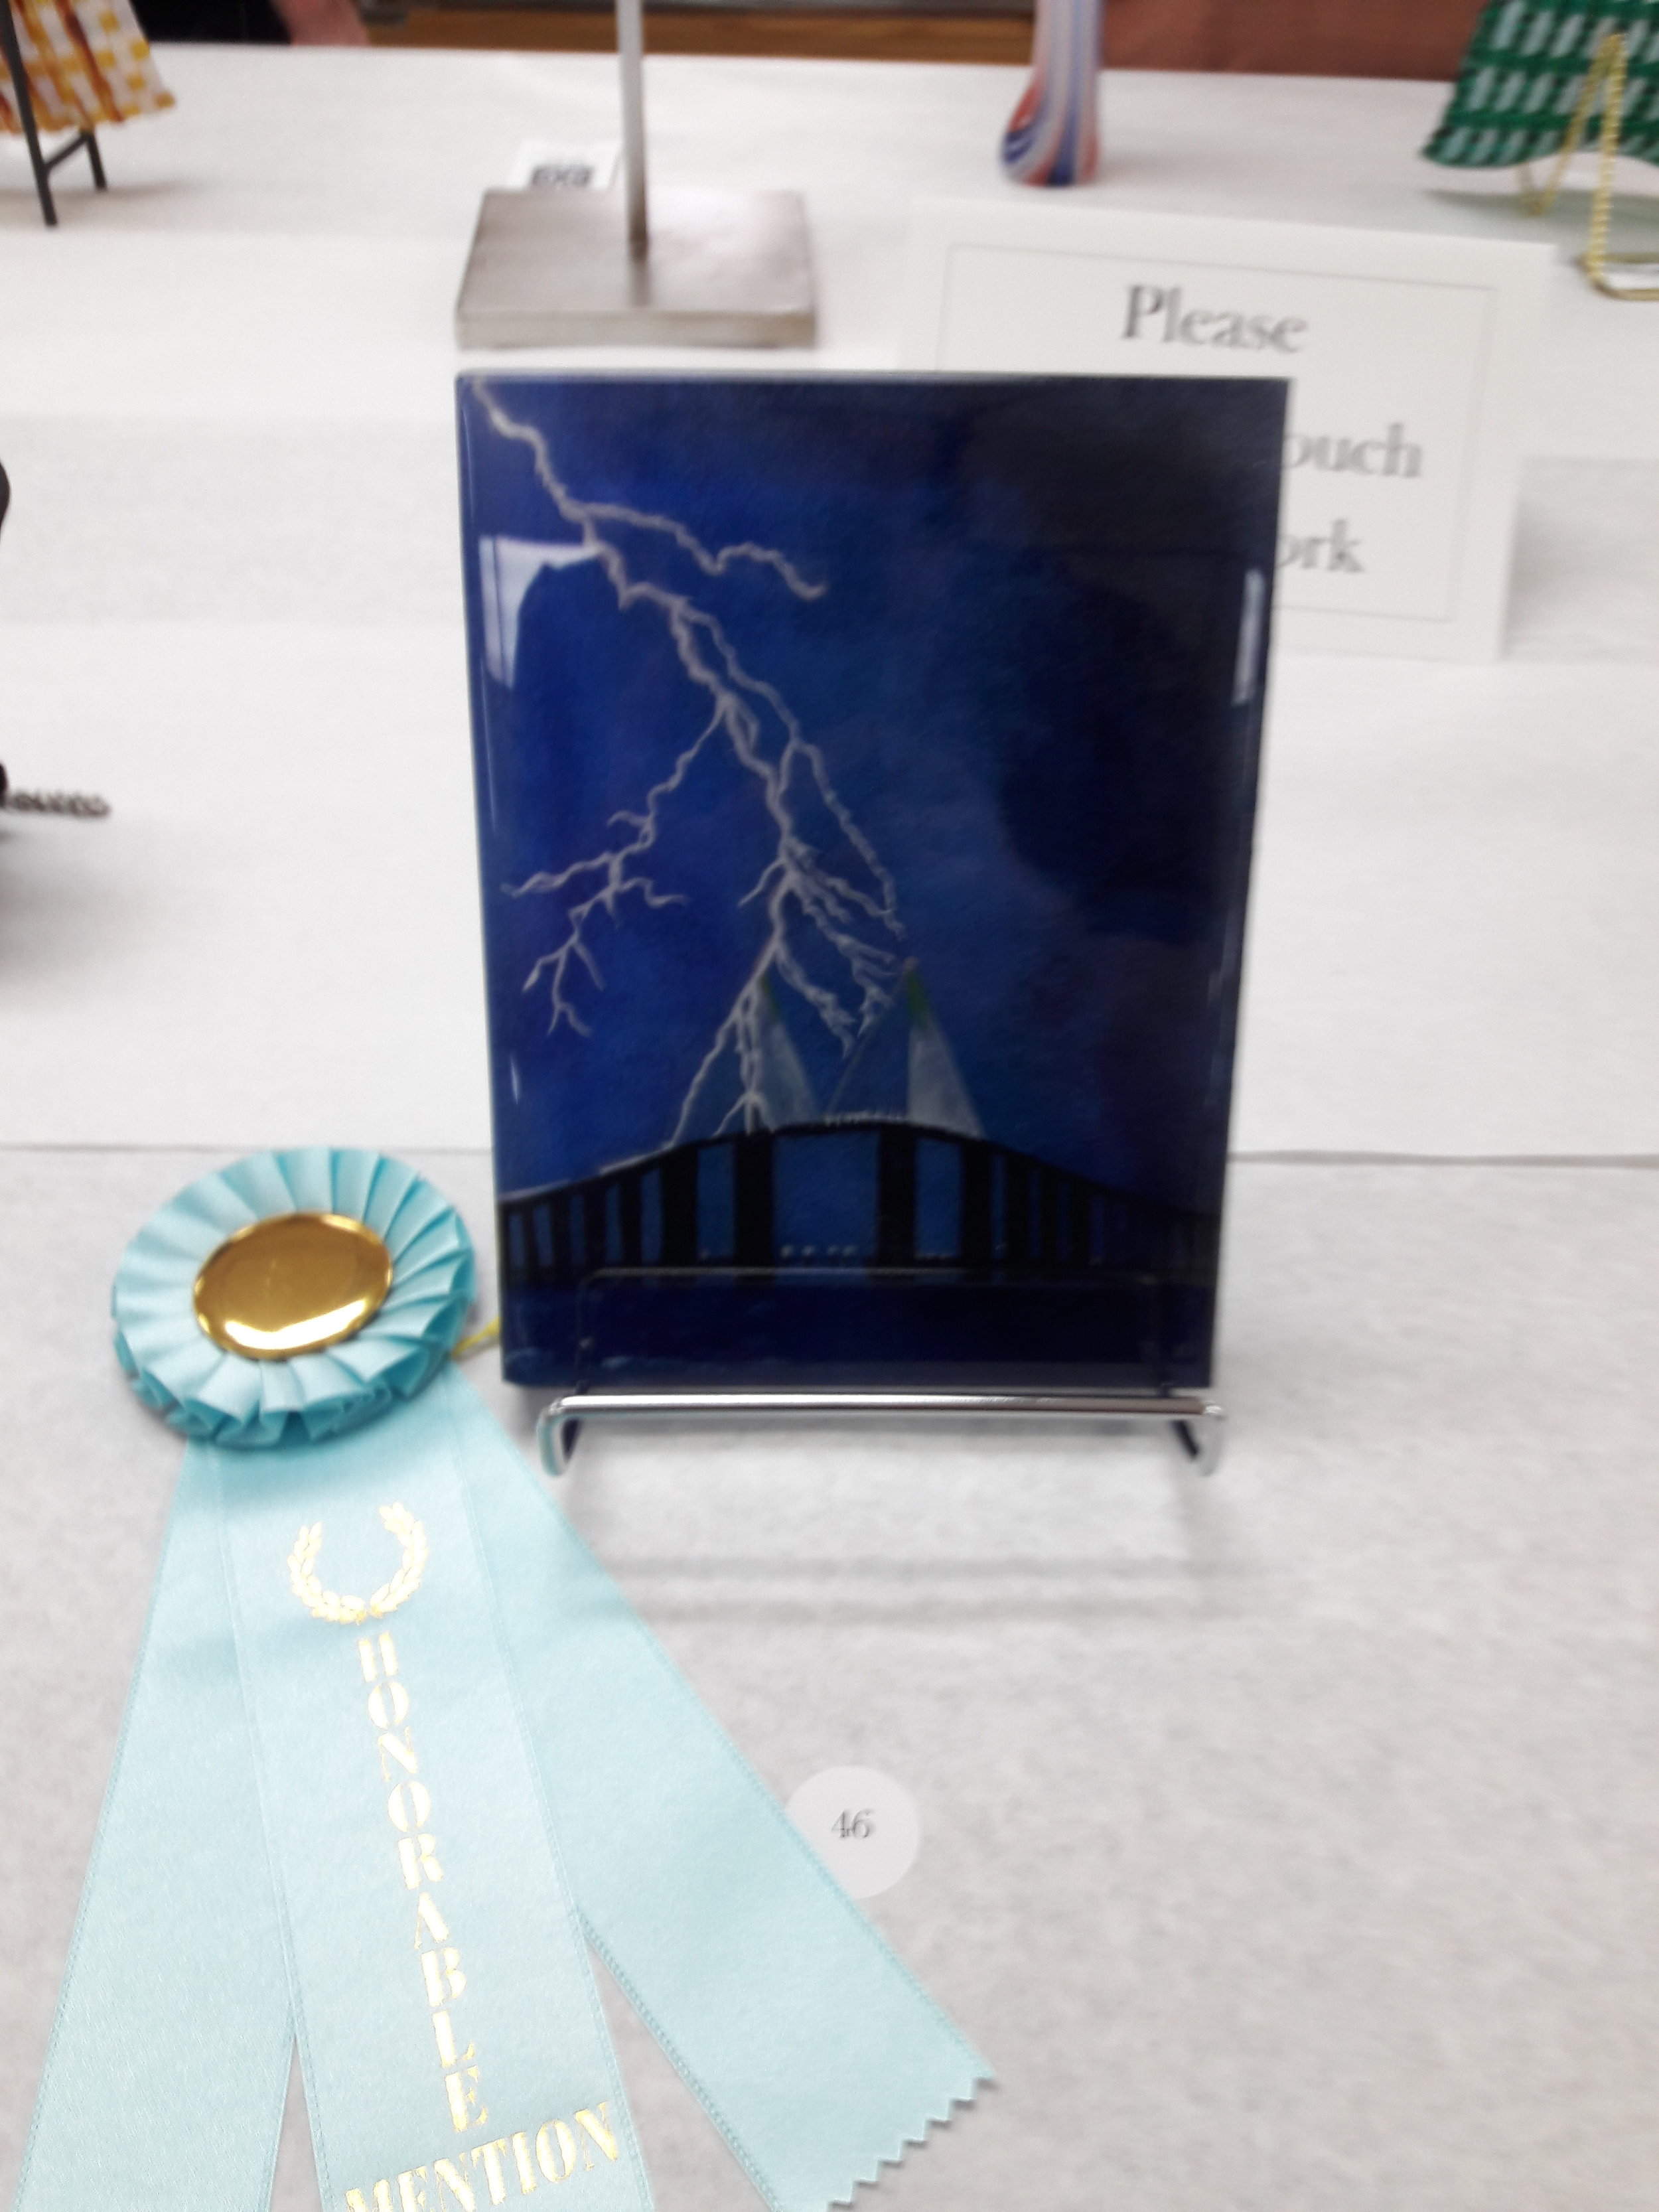 Exhibition - Honorable Mention